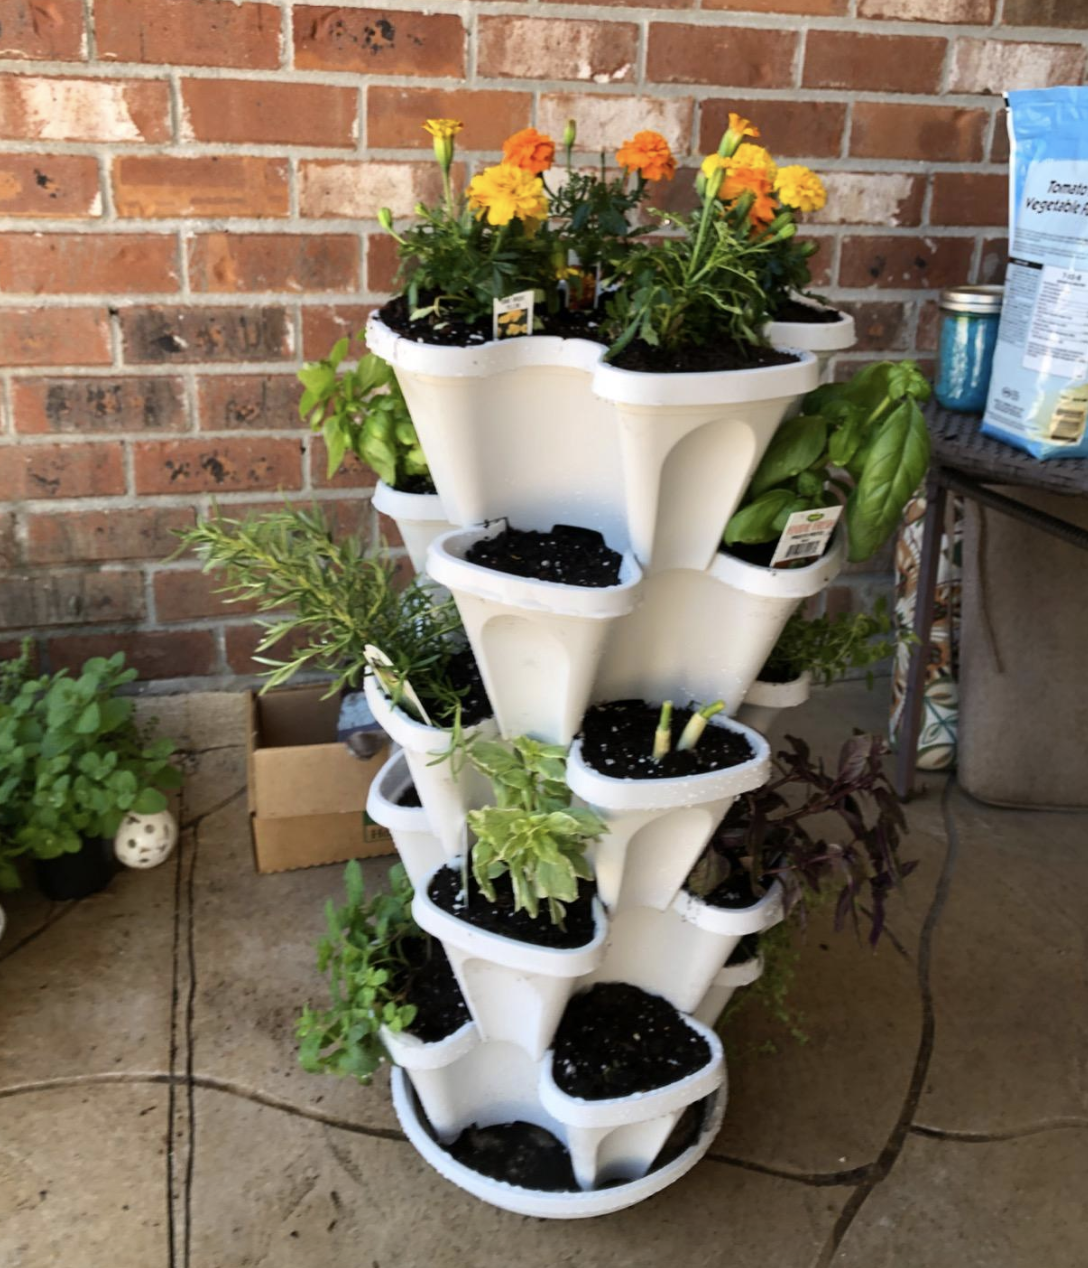 reviewer photo of the white planter